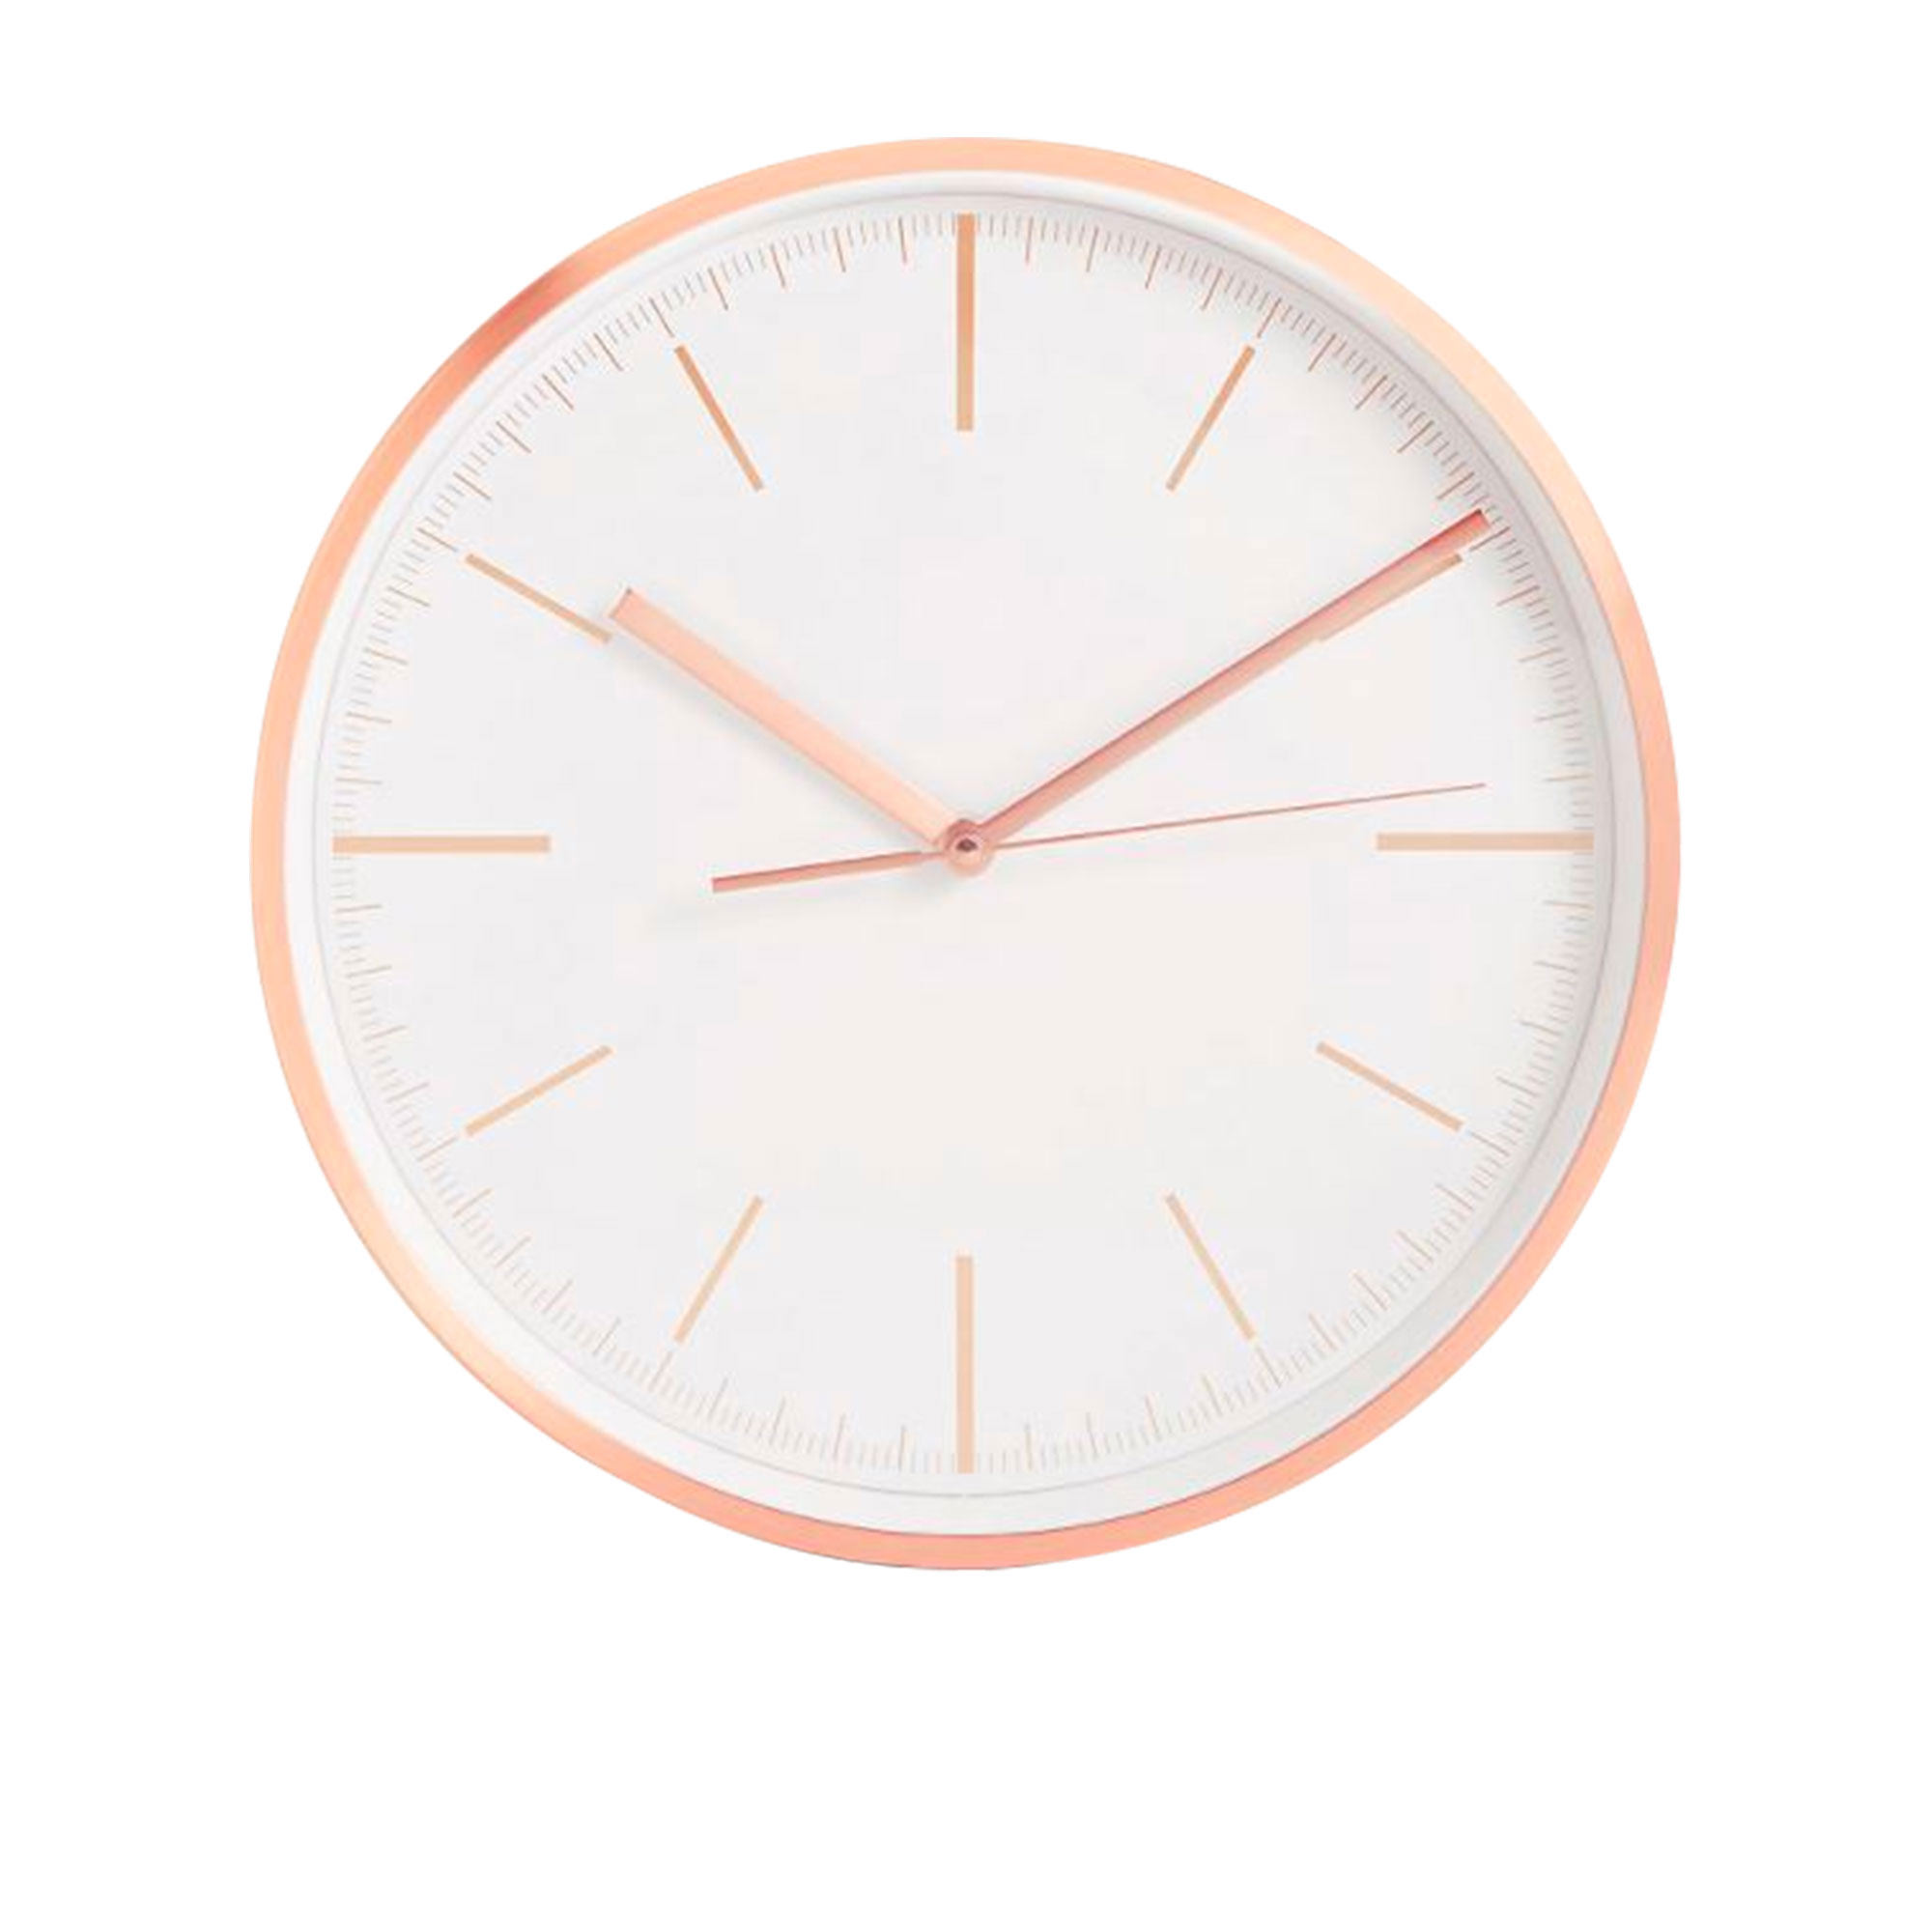 Toki Kayla Wall Clock 30cm Rose Gold